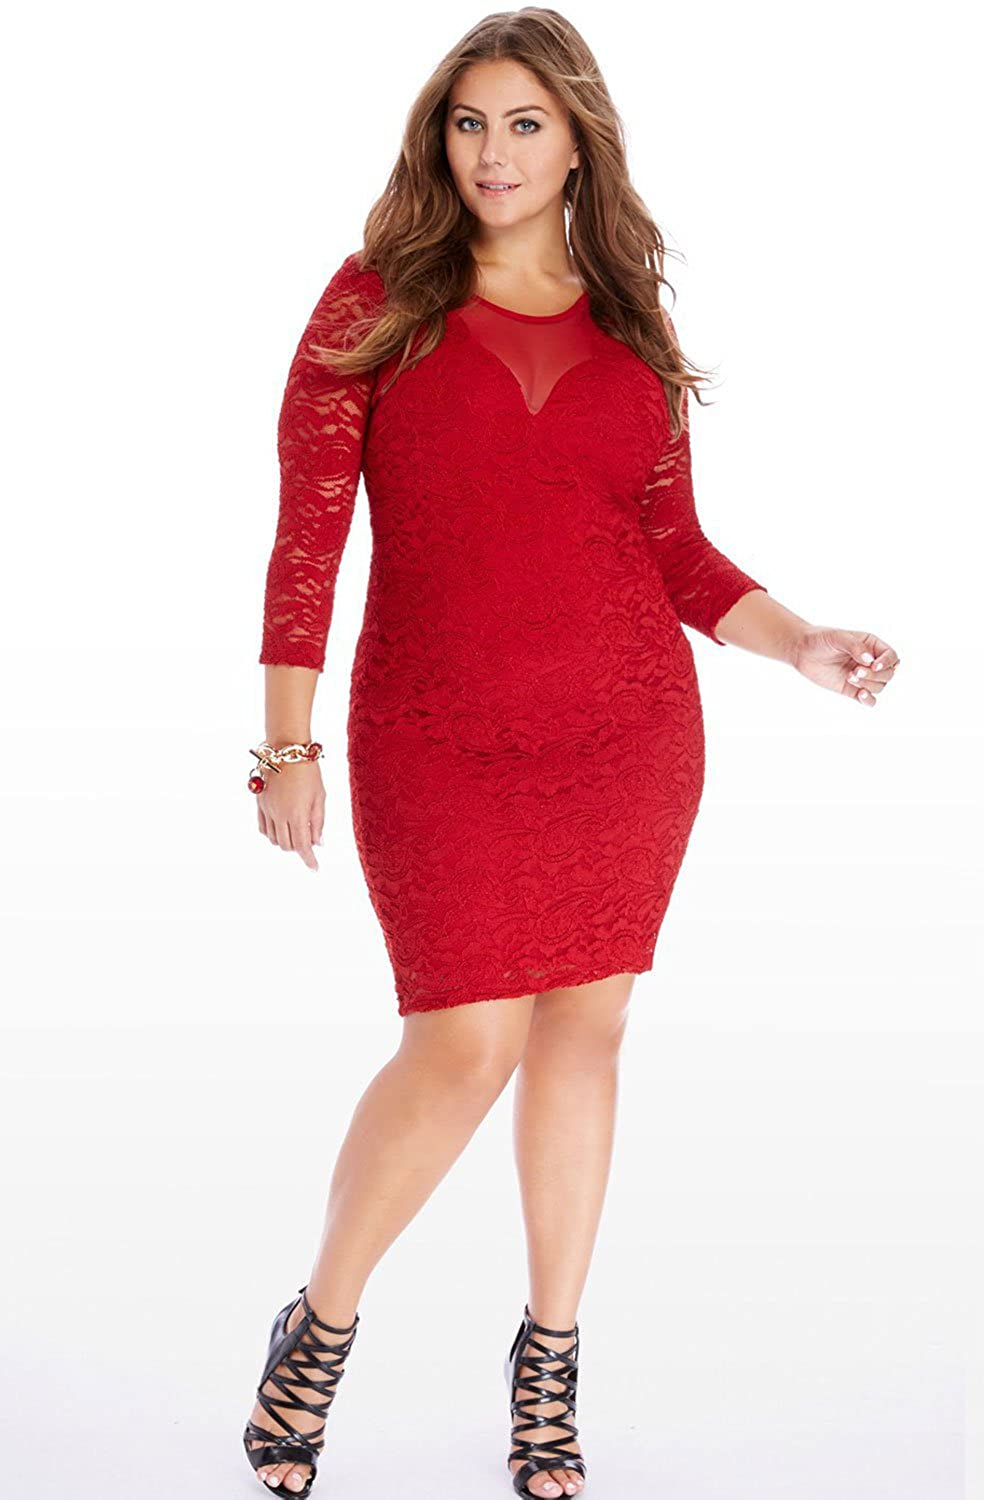 Zumeet Women Lace Decorated Plus Size Valentine Dress Red at ...